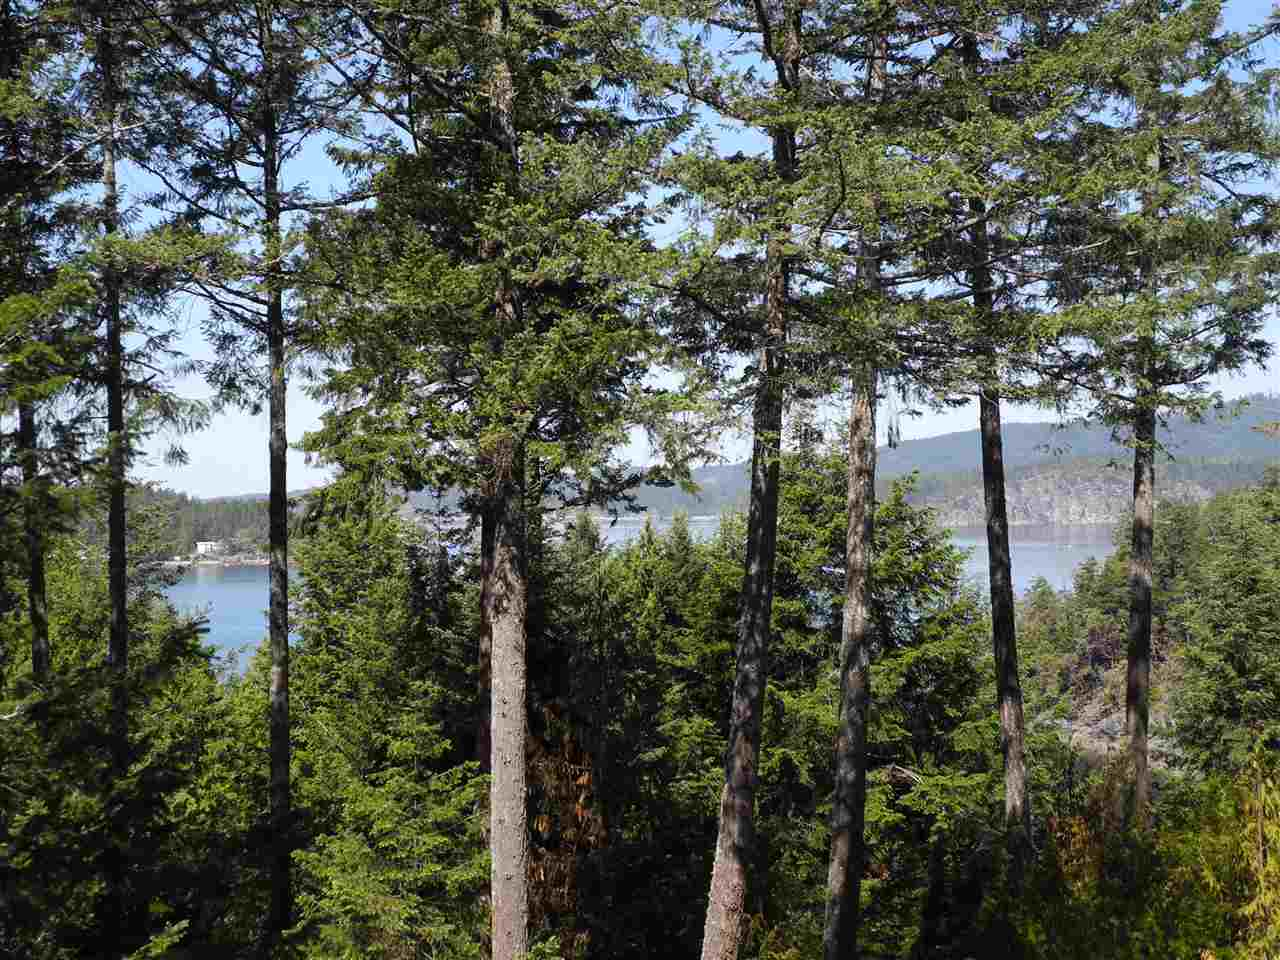 Photo 10: 4436 MCLINTOCK Road in Pender Harbour: Pender Harbour Egmont House for sale (Sunshine Coast)  : MLS(r) # R2068891